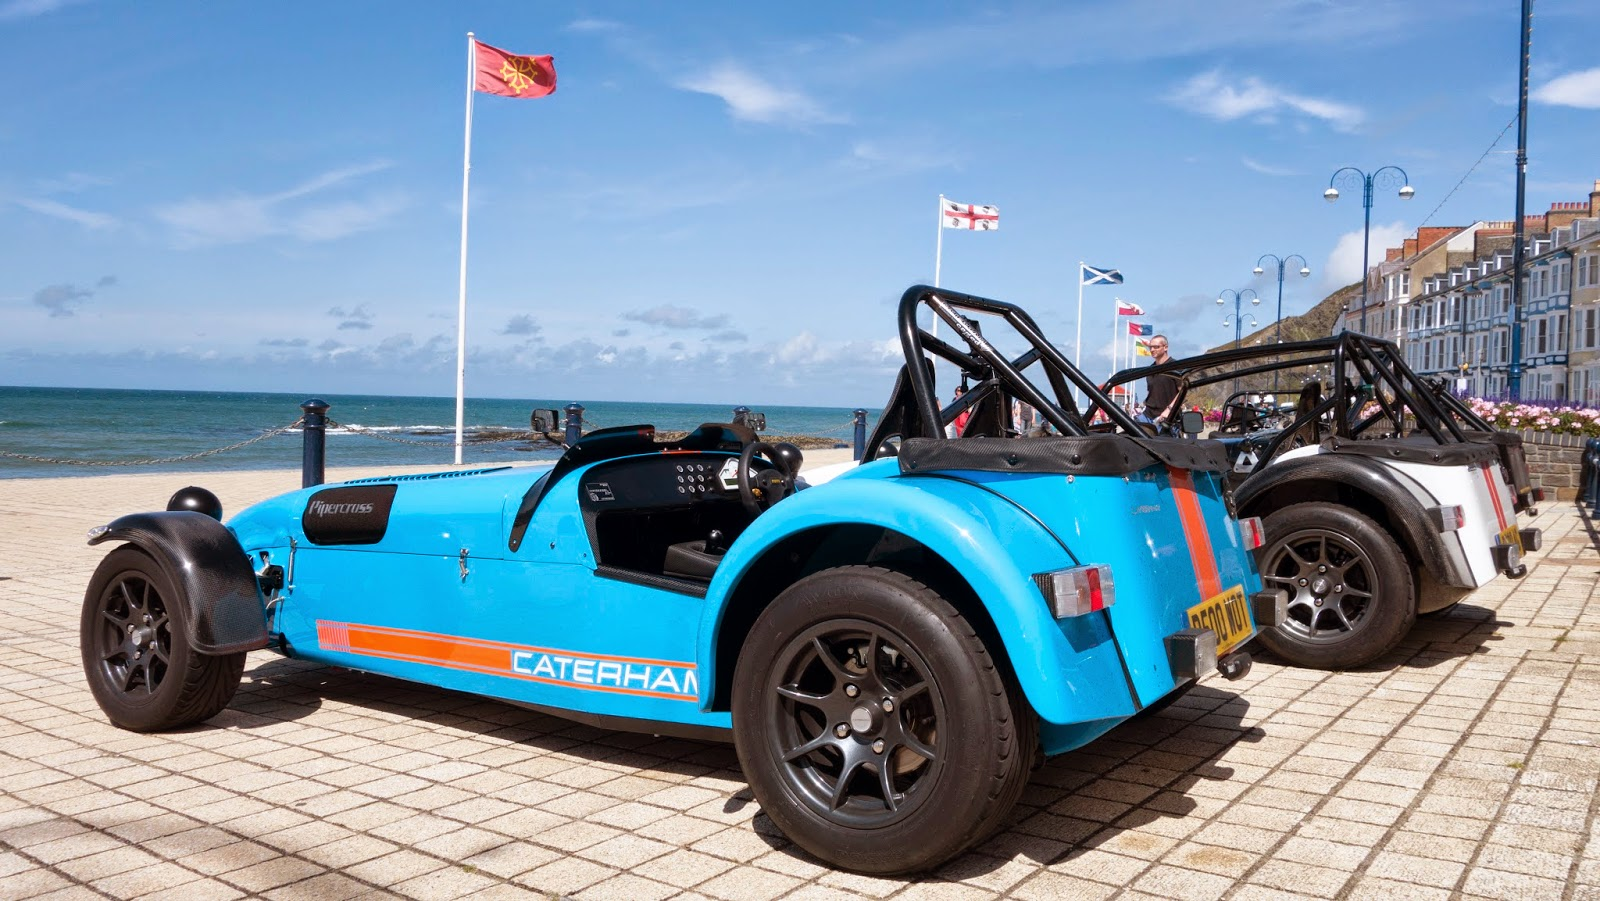 Caterham's parked up on Aberystwith promenade.